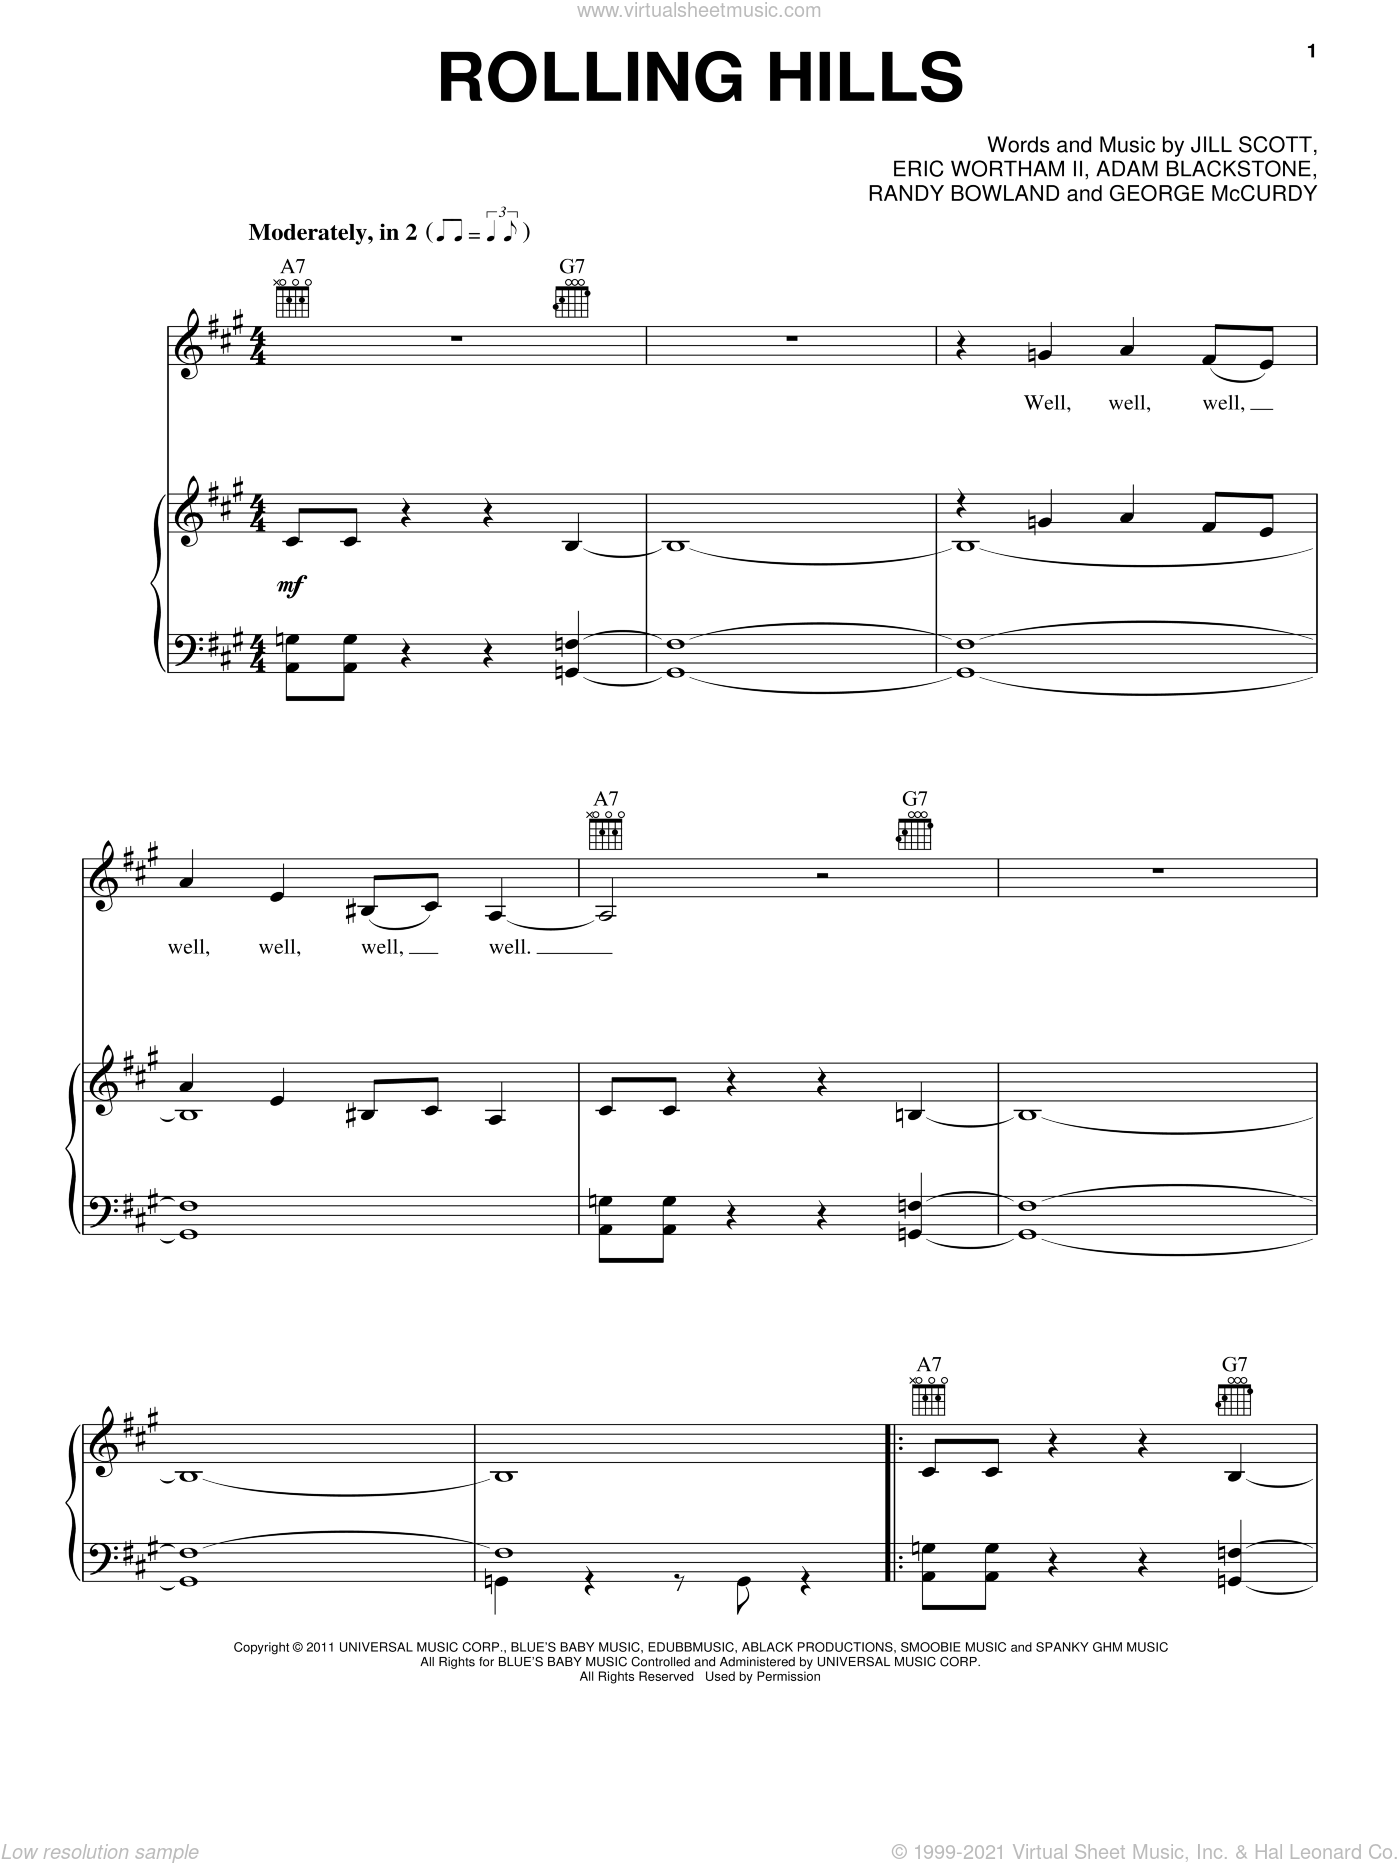 Rolling Hills sheet music for voice, piano or guitar by Jill Scott, Adam Blackstone, Eric Wortham II, George McCurdy and Randy Bowland, intermediate